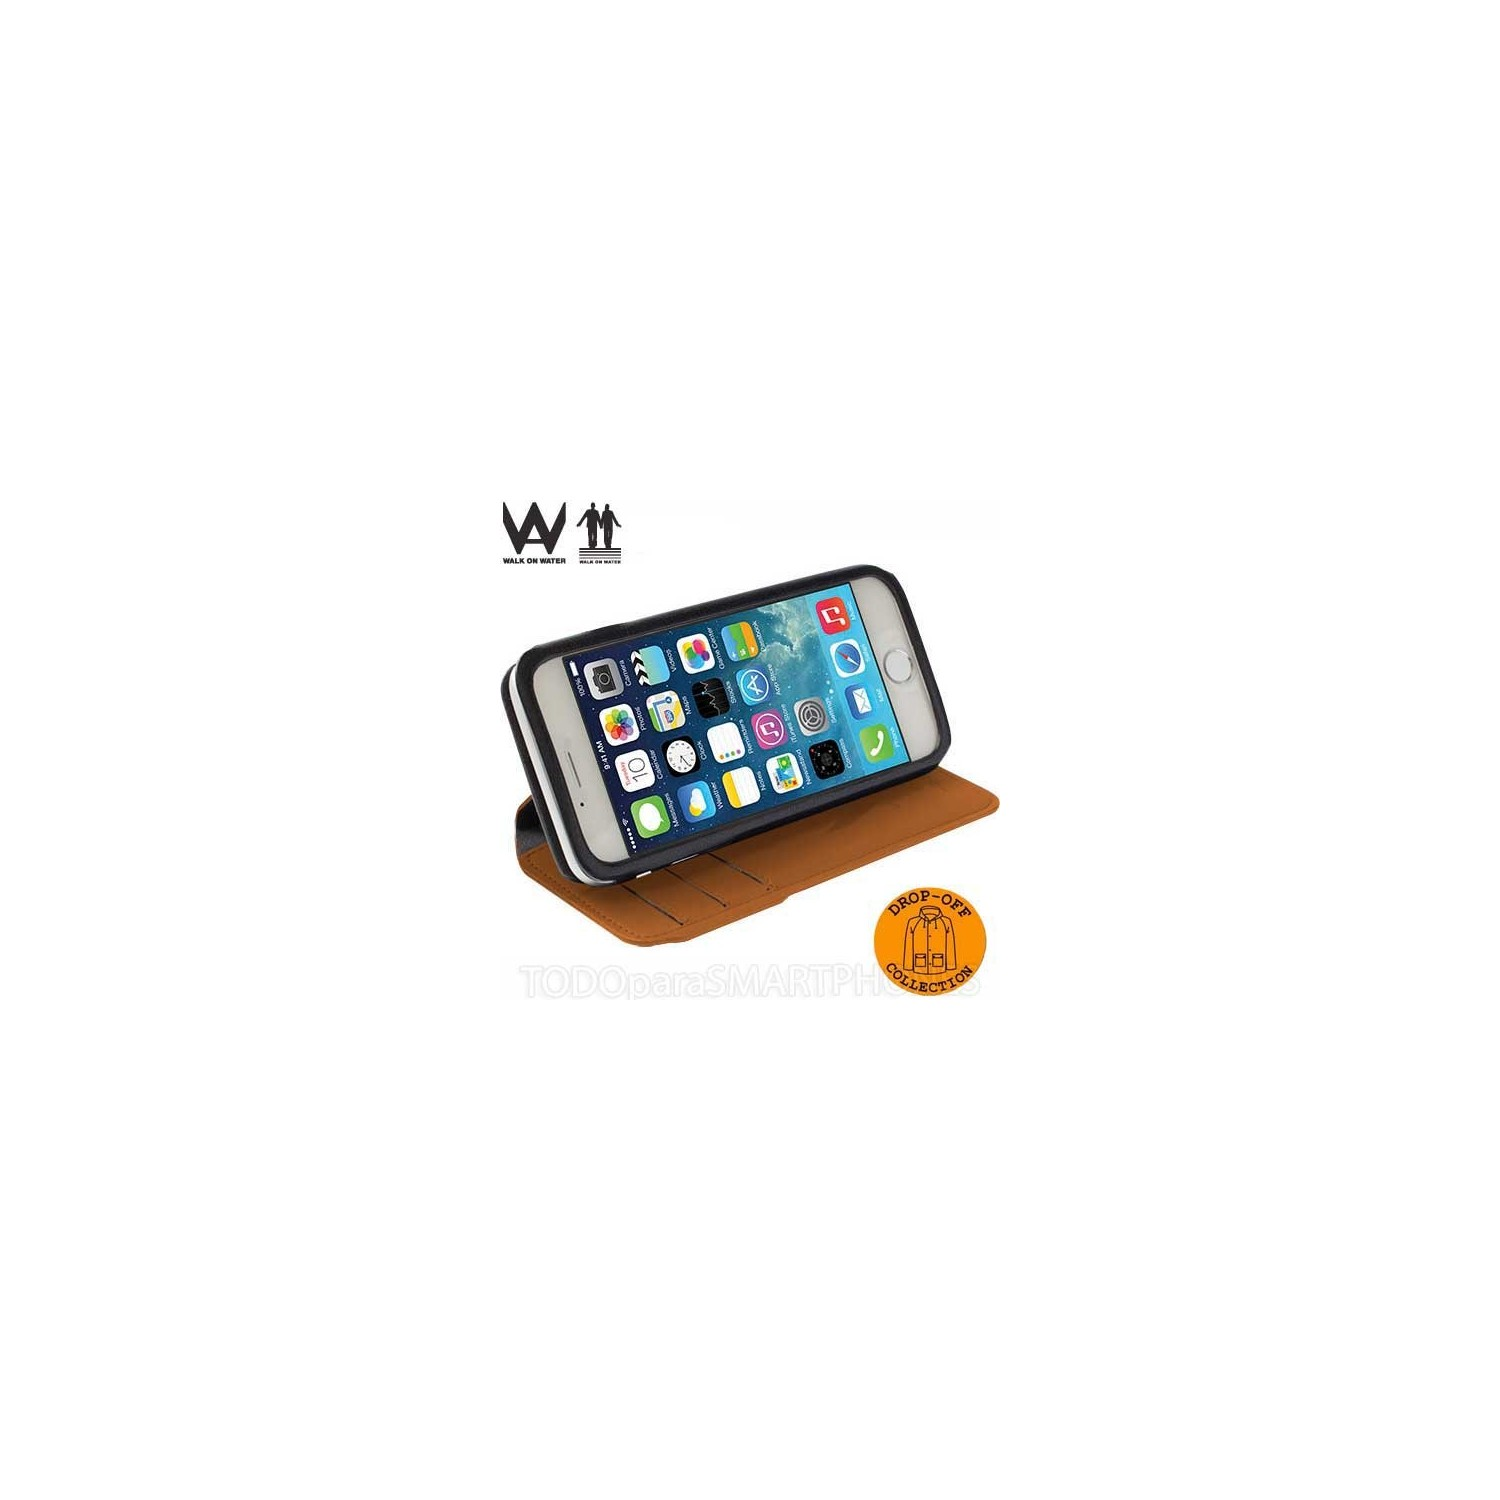 Case - Walk on Water Drop Off Carry Stand Case for iPhone 6 - Orange